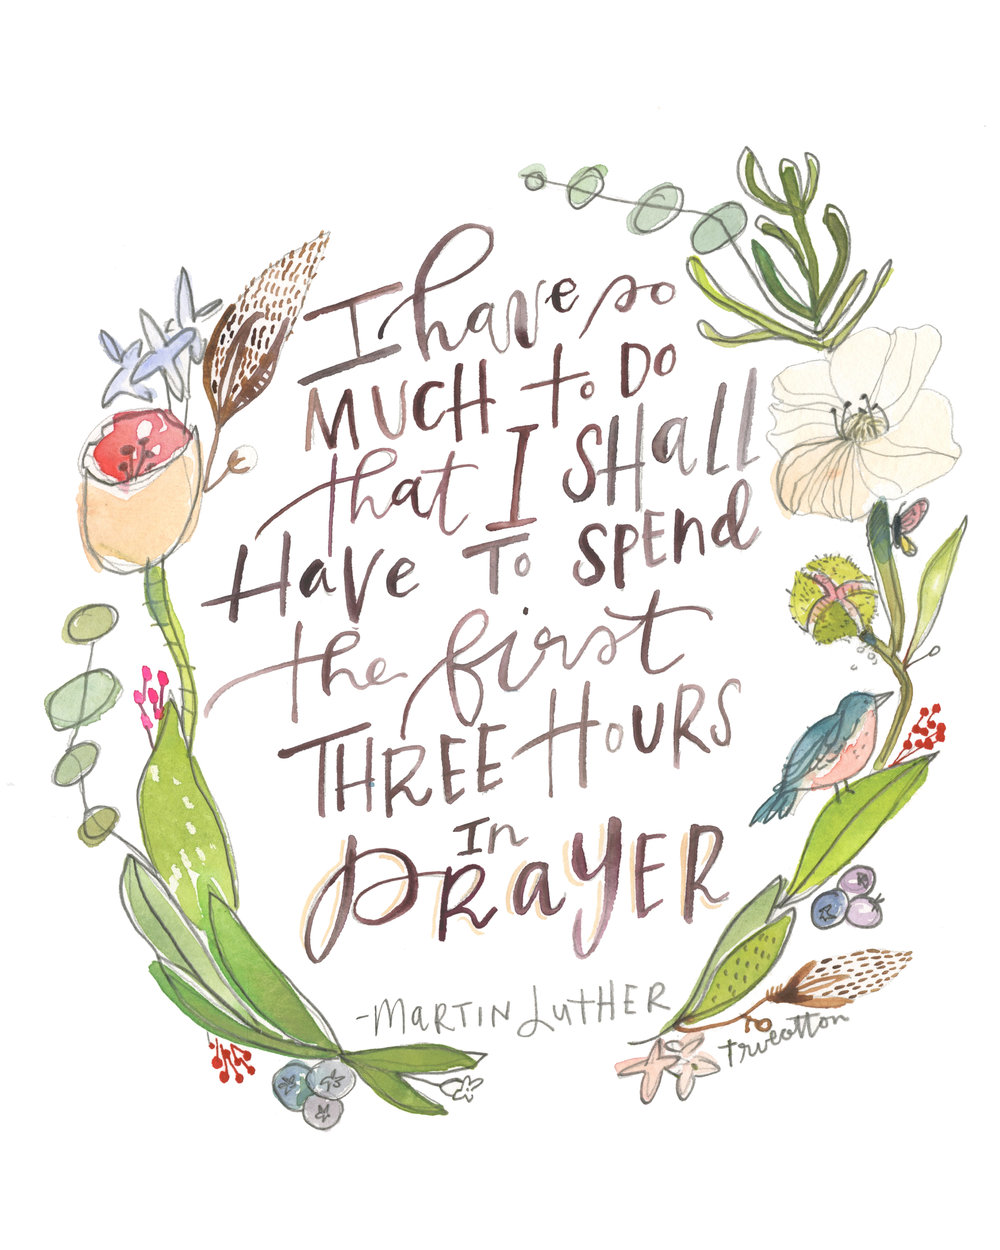 "Printable 6 | ""Three Hours in Prayer"" (8x10"")   I have so much to do that I shall have to spend the first three hours in prayer. — Martin Luther   True Cotton  for Risen Motherhood   DOWNLOAD"